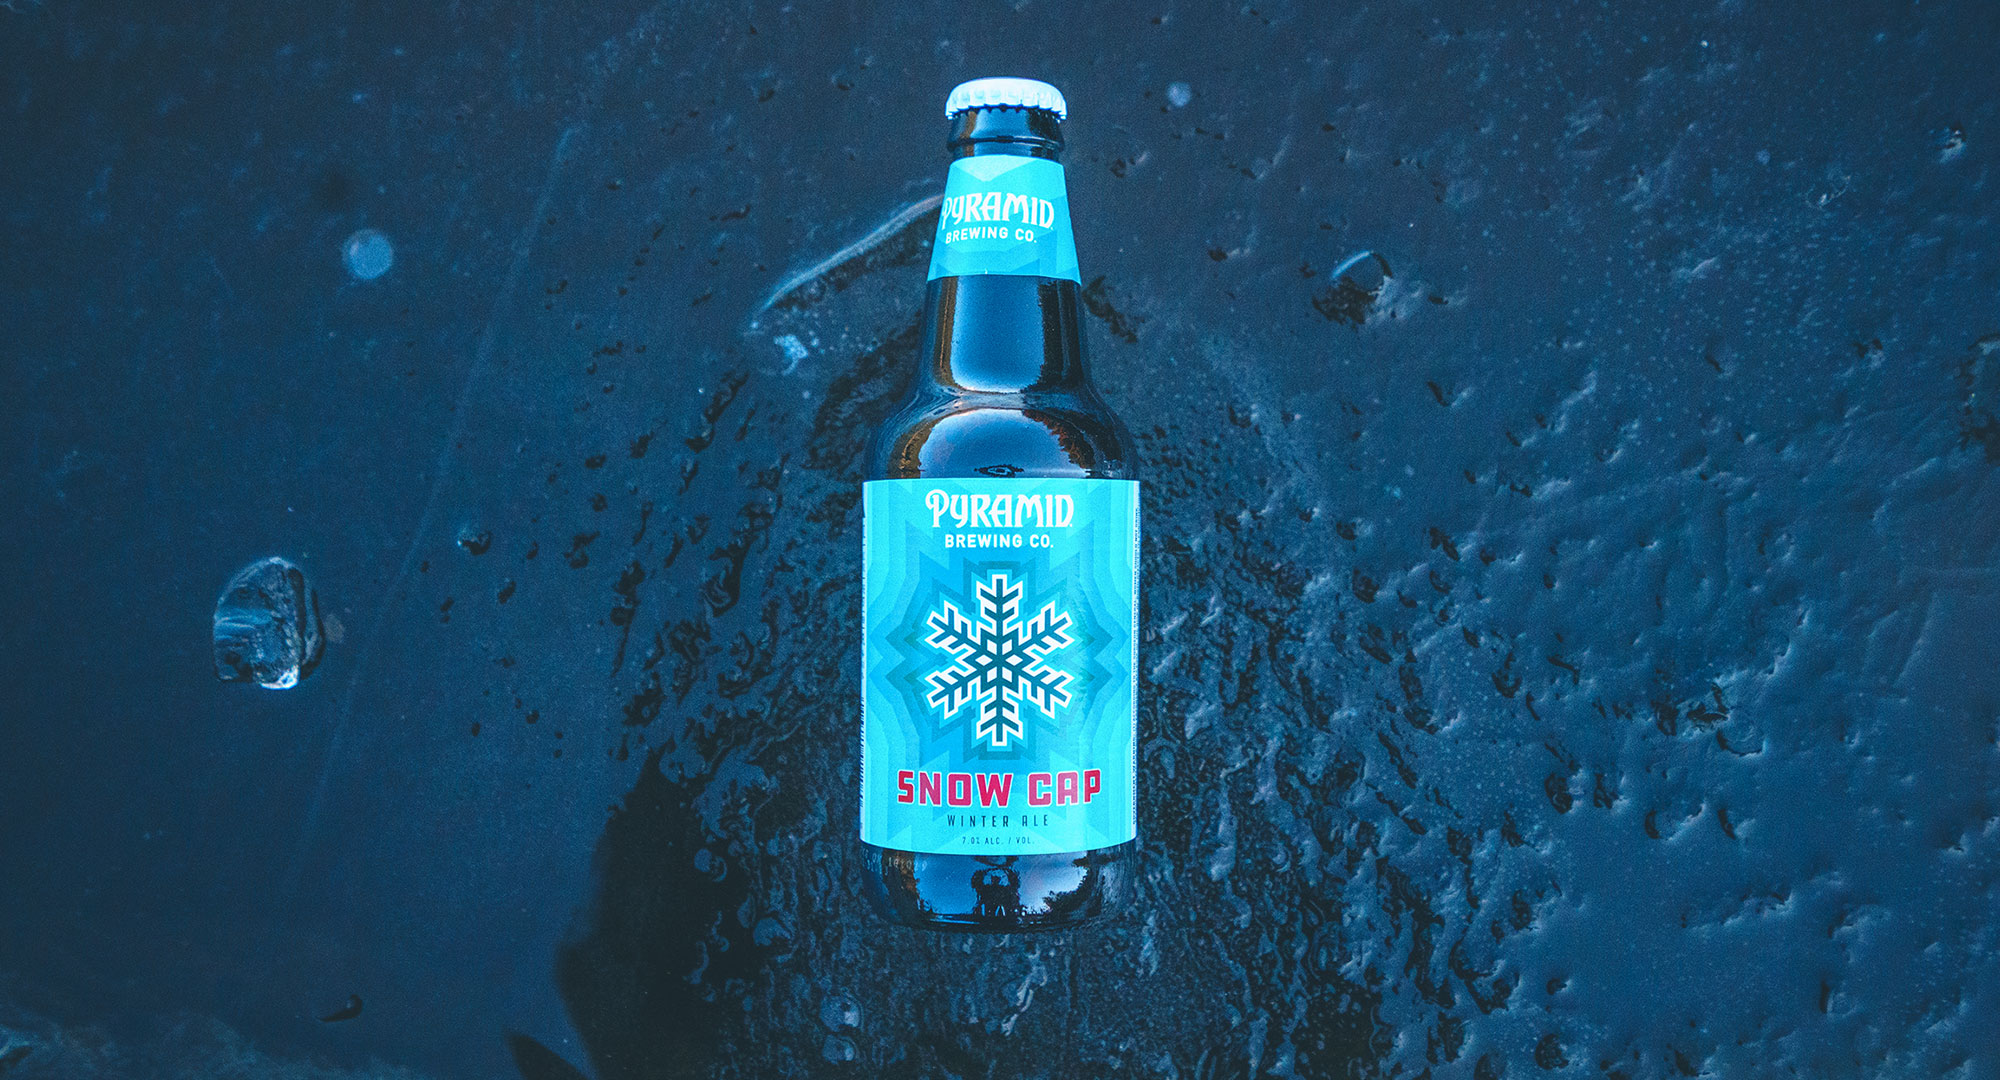 Looking down at a bottle of Snow Cap on frozen water